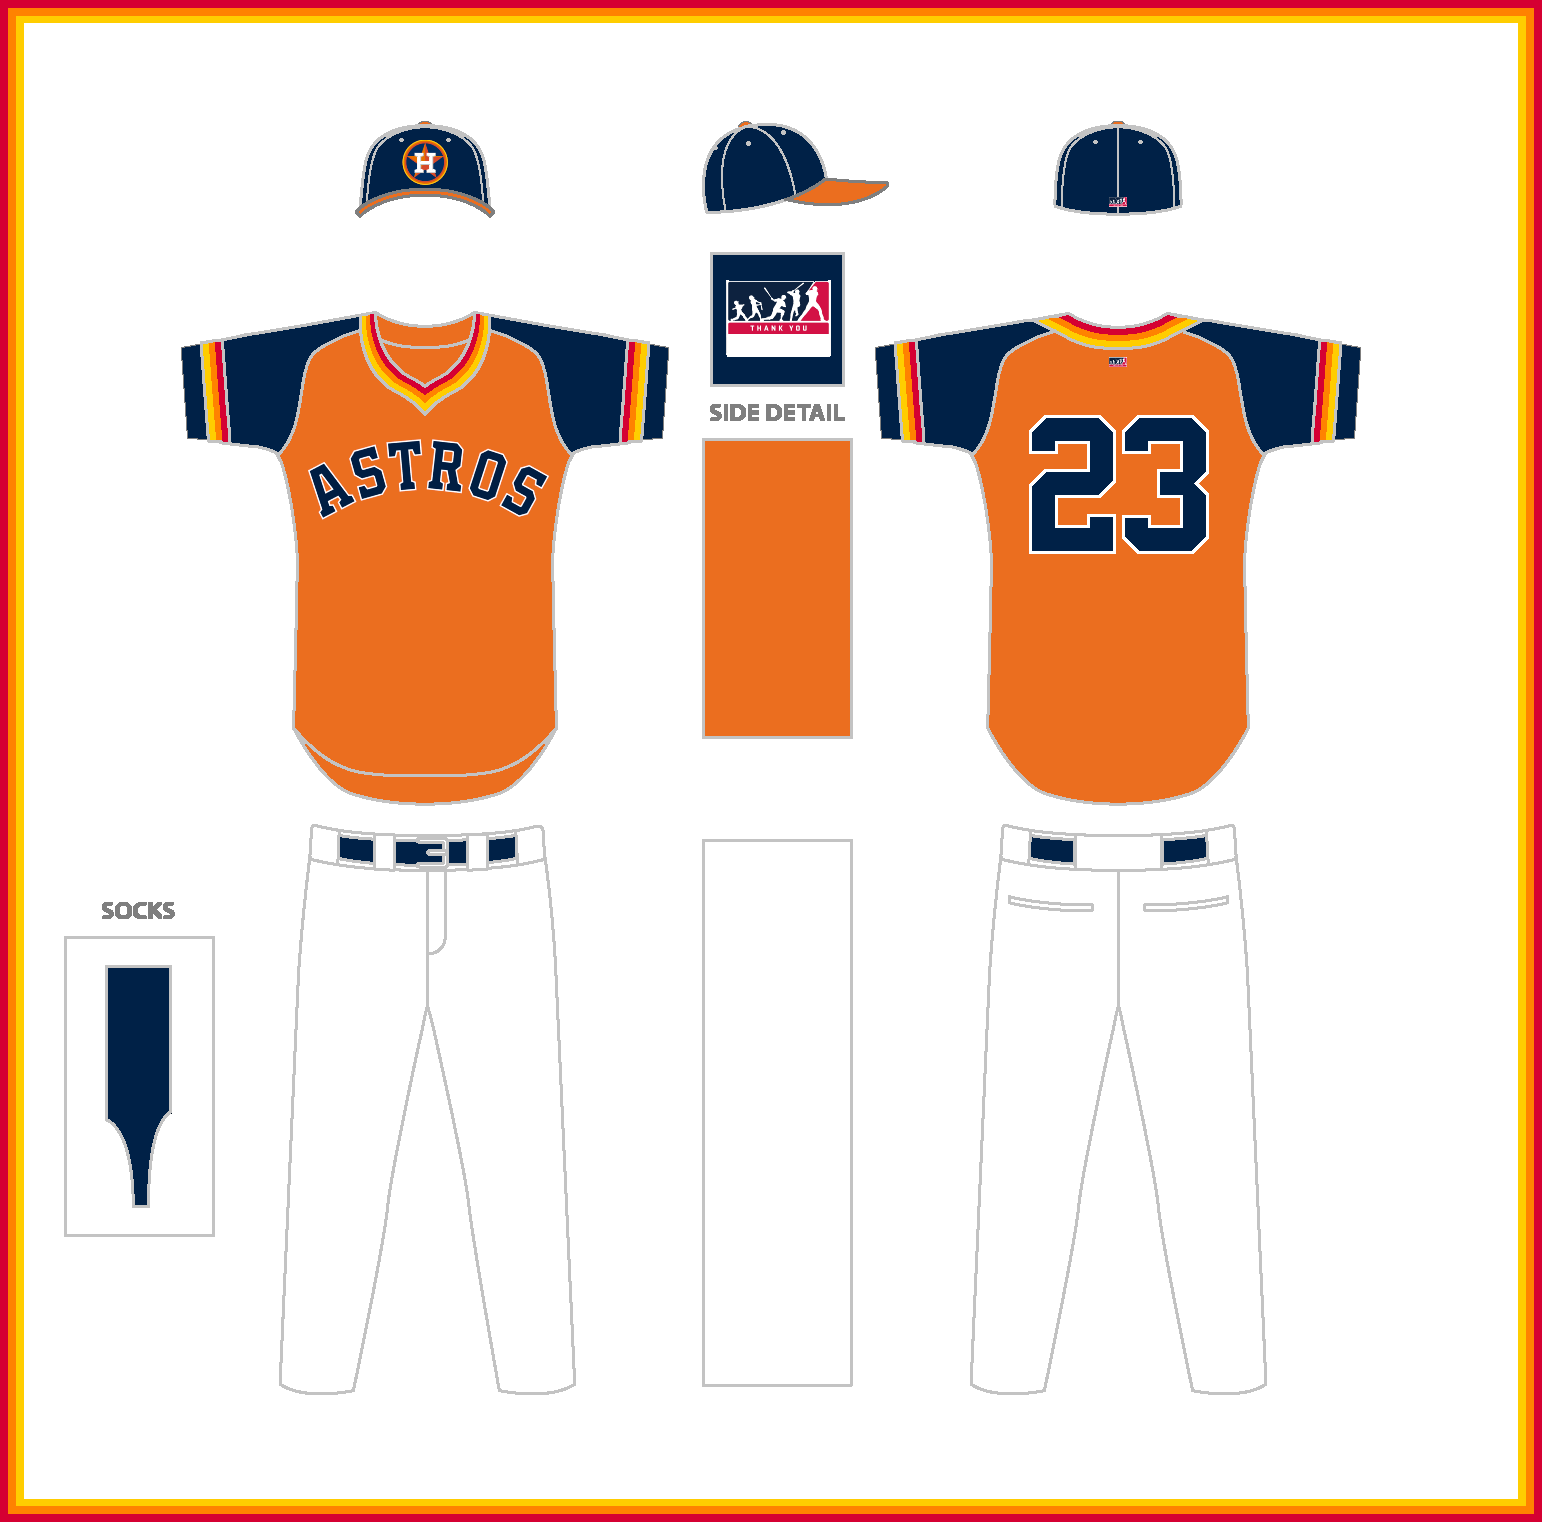 Astros_w_outline.png